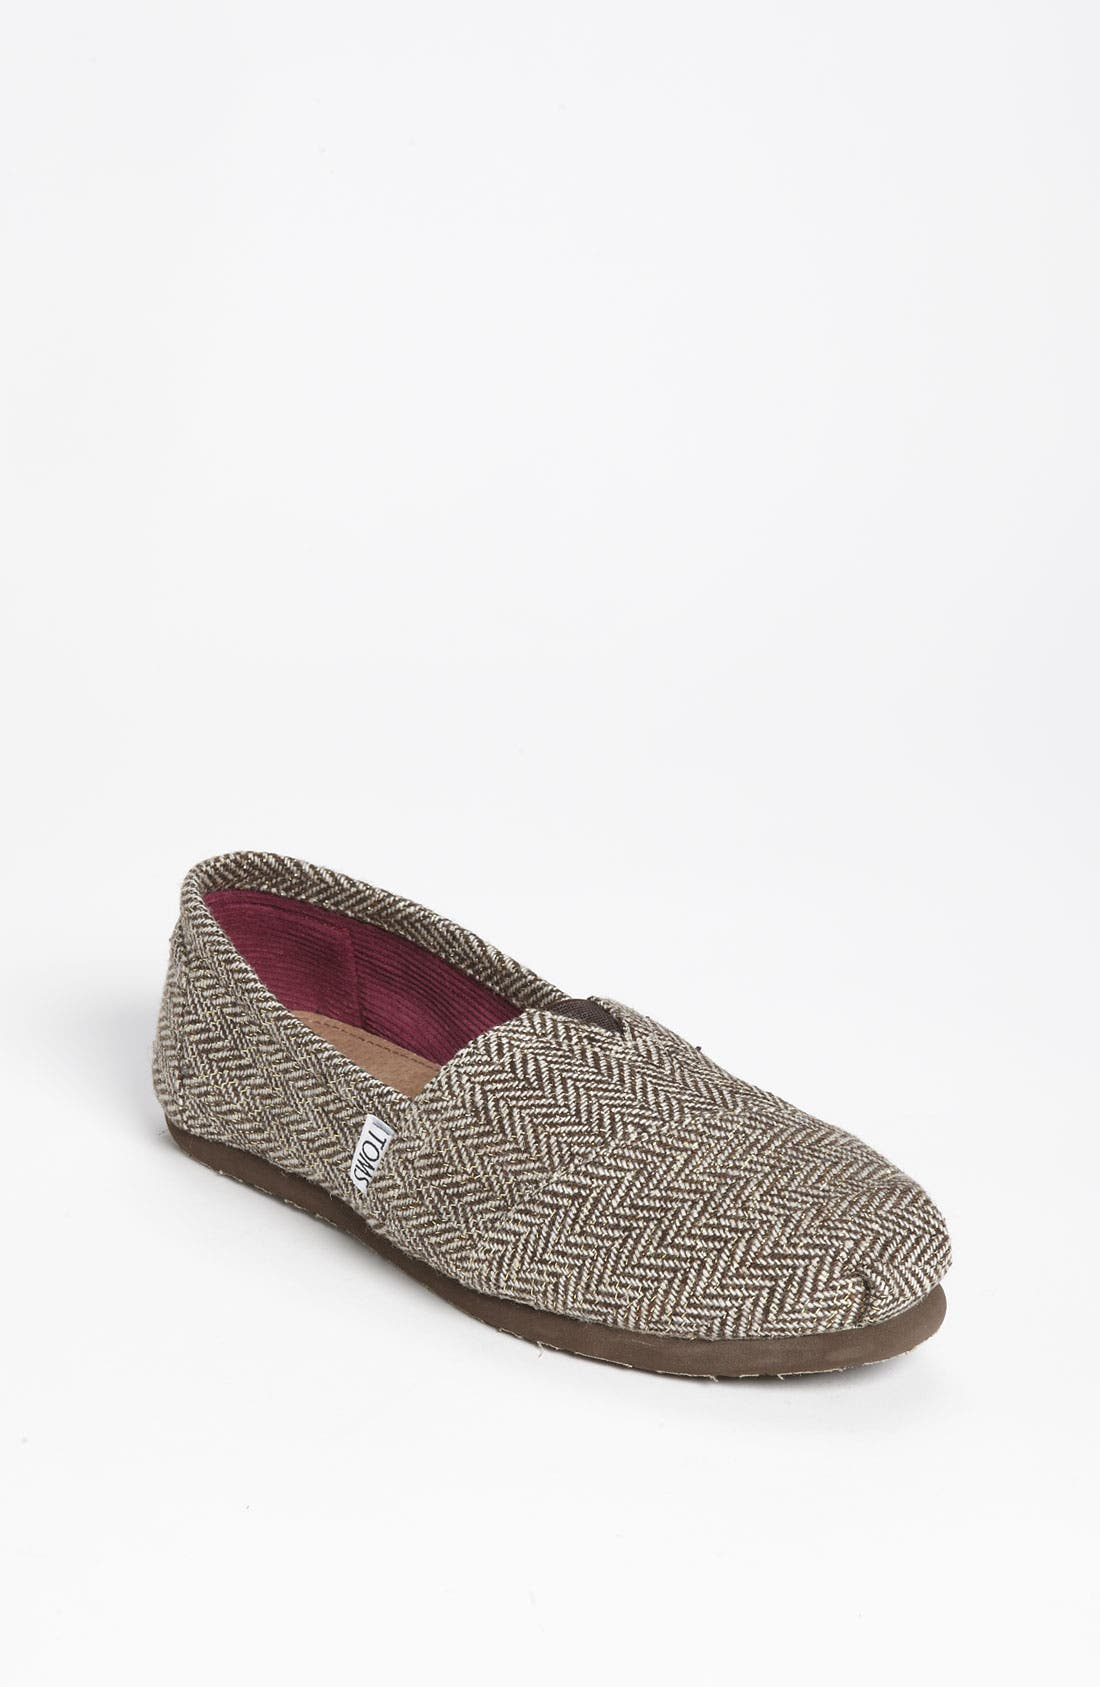 Alternate Image 1 Selected - TOMS 'Classic' Metallic Herringbone Slip-On (Women)